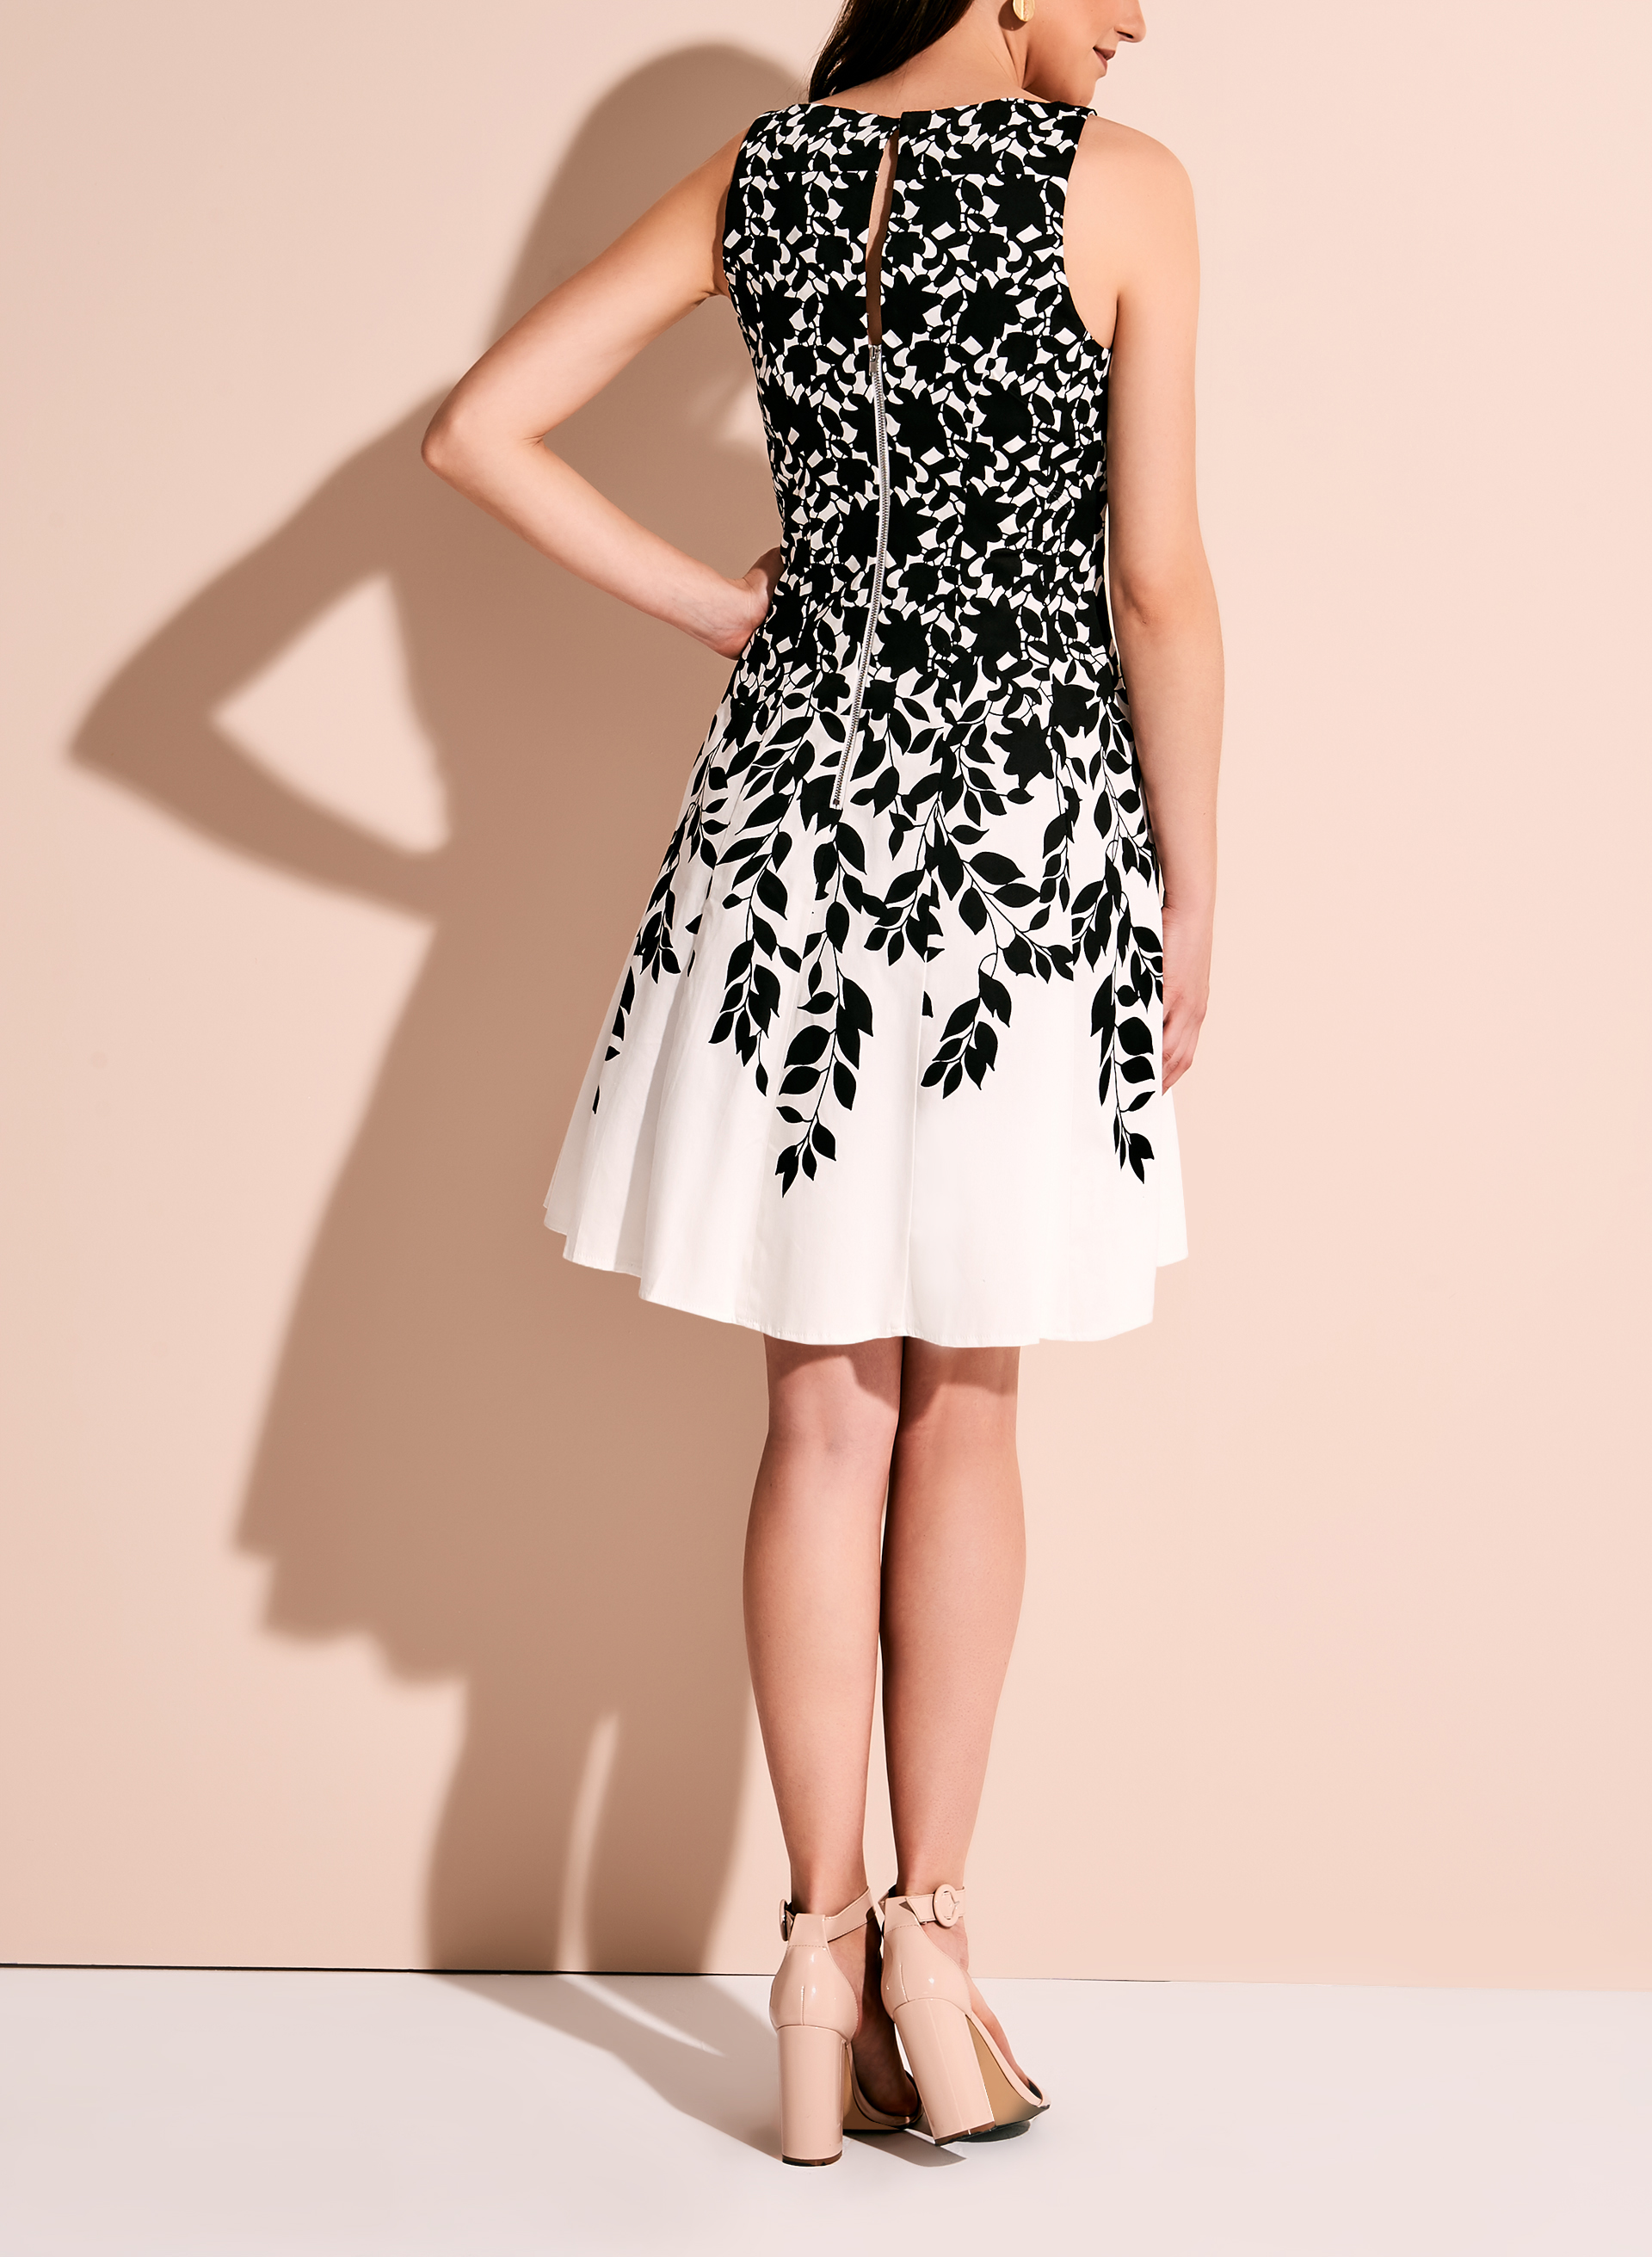 Contrast Print Fit & Flare Dress, Black, hi-res